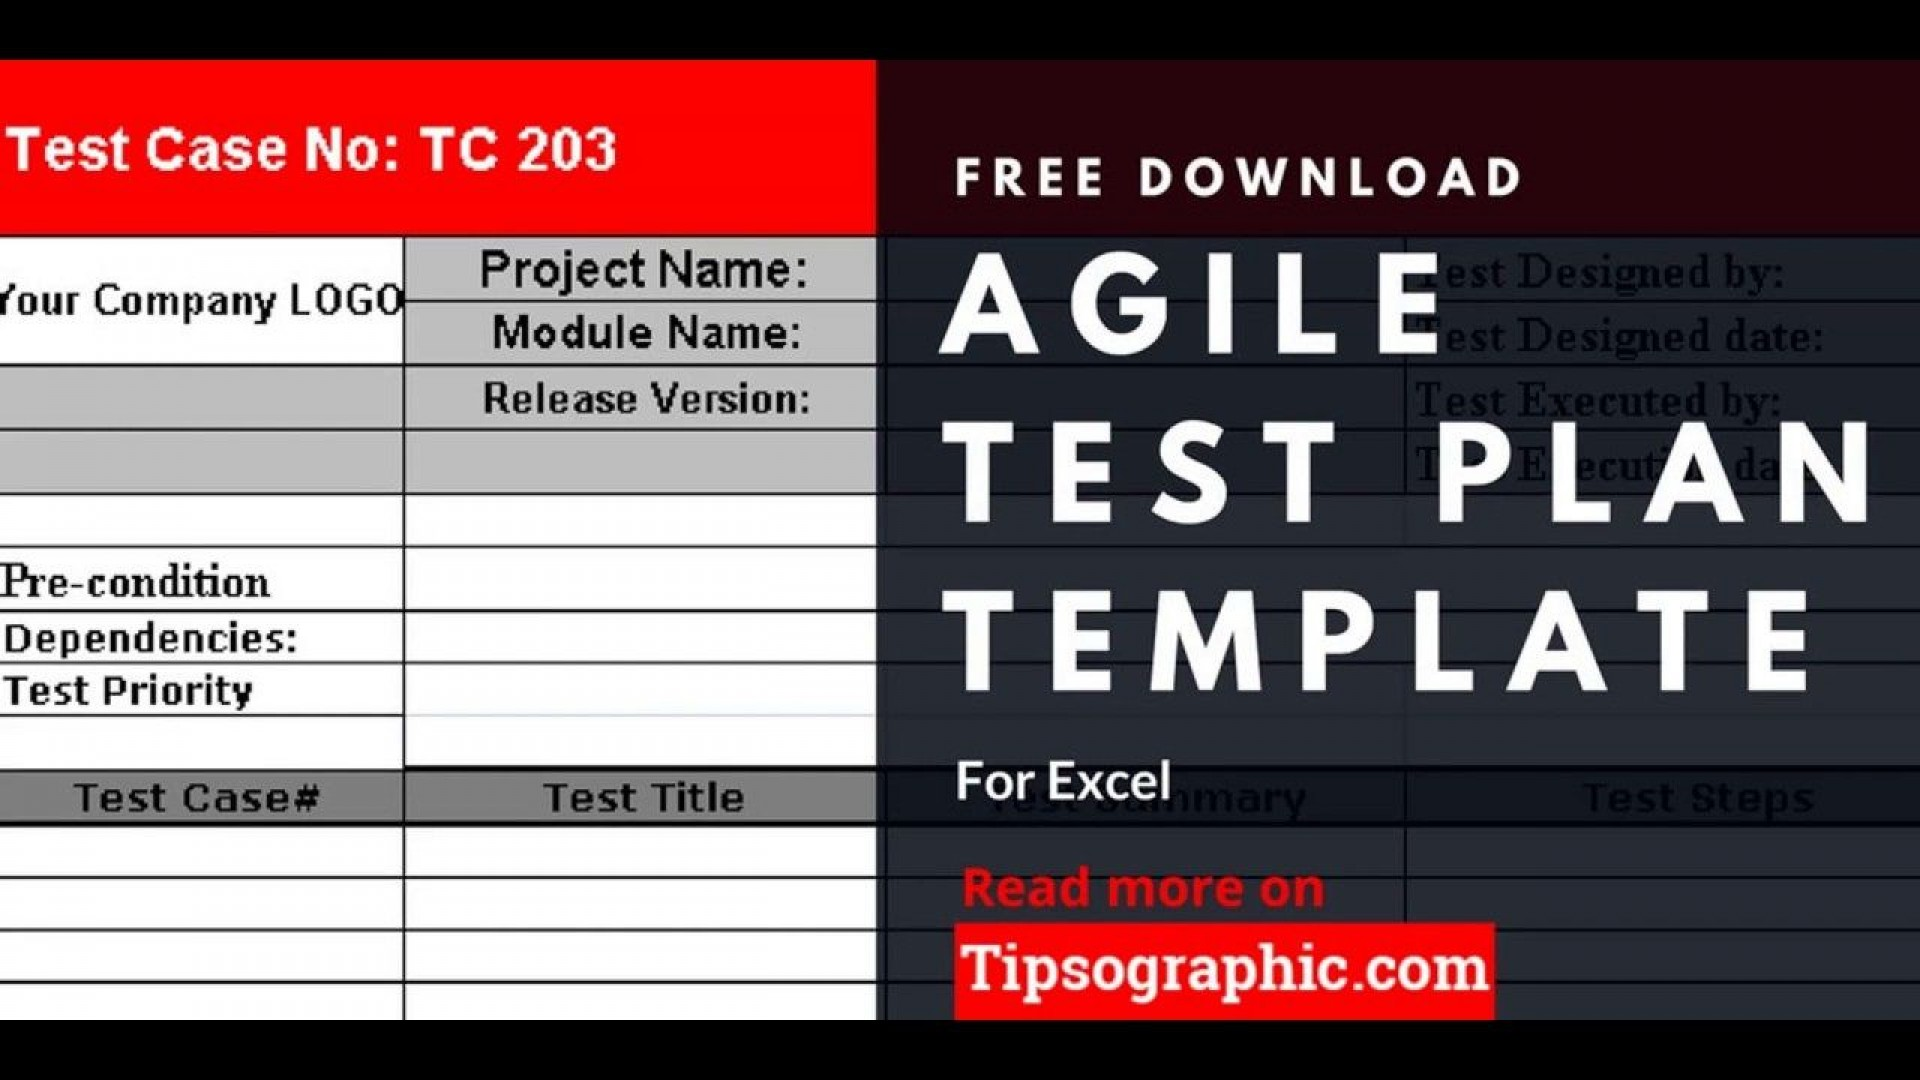 005 Dreaded Agile Test Plan Template Image  Word Example Document1920